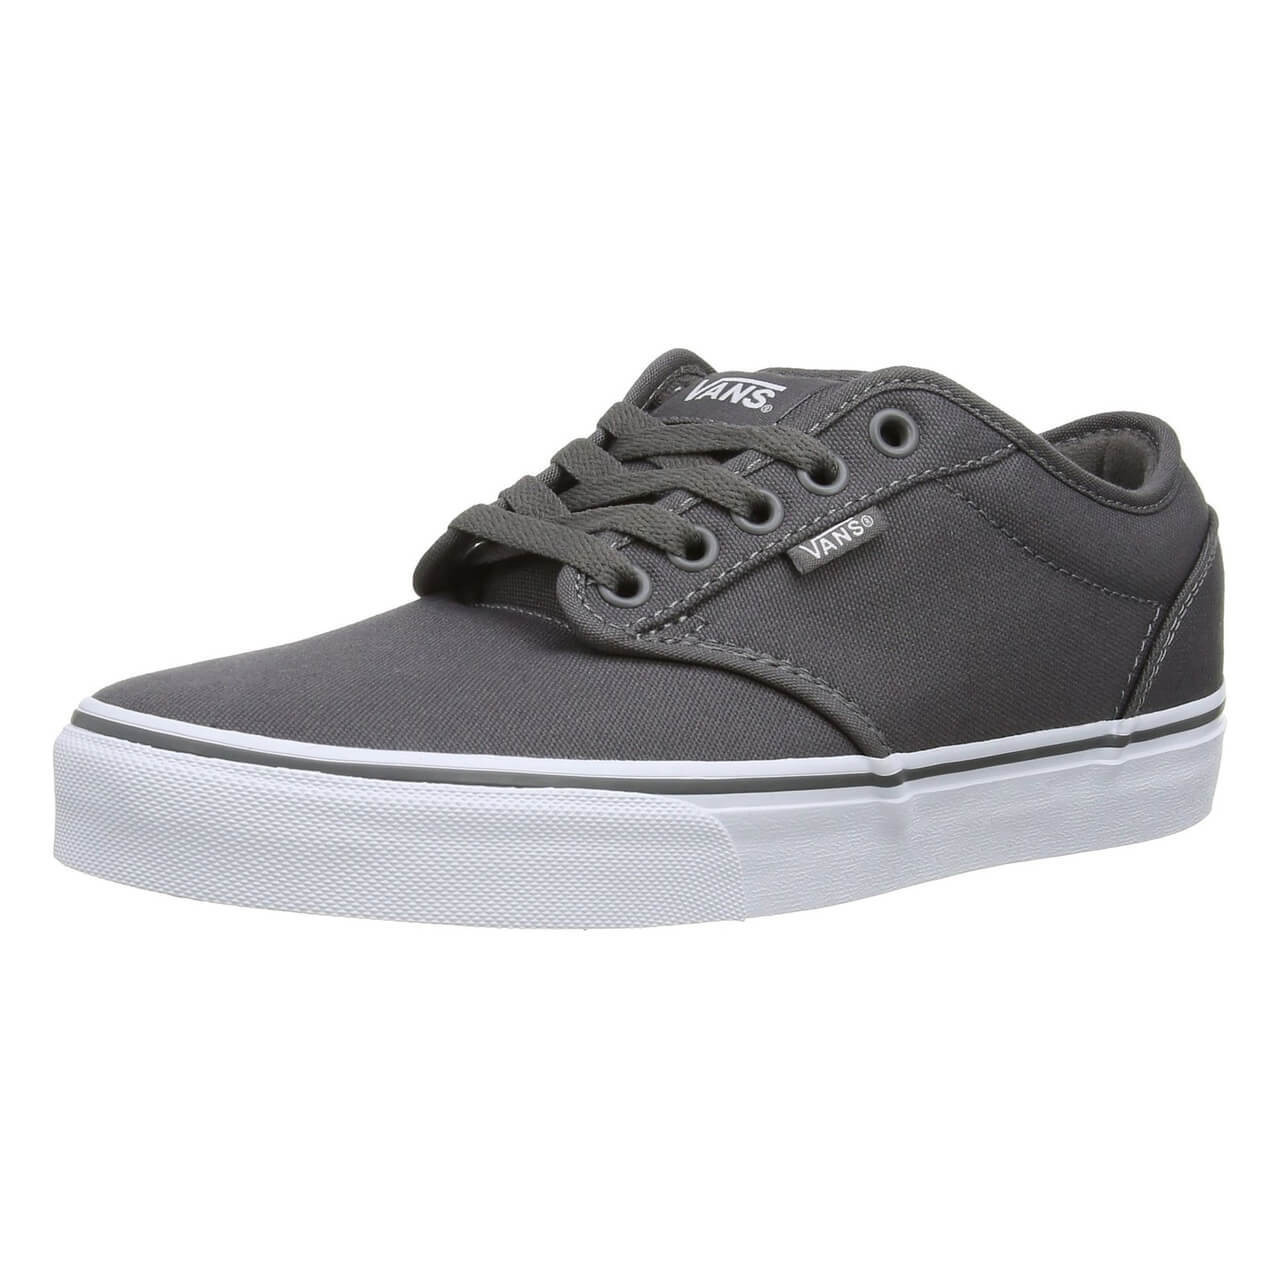 abf08a5a1a36 Vans Atwood Canvas Trainers Pewter Grey Image. Double tap to zoom